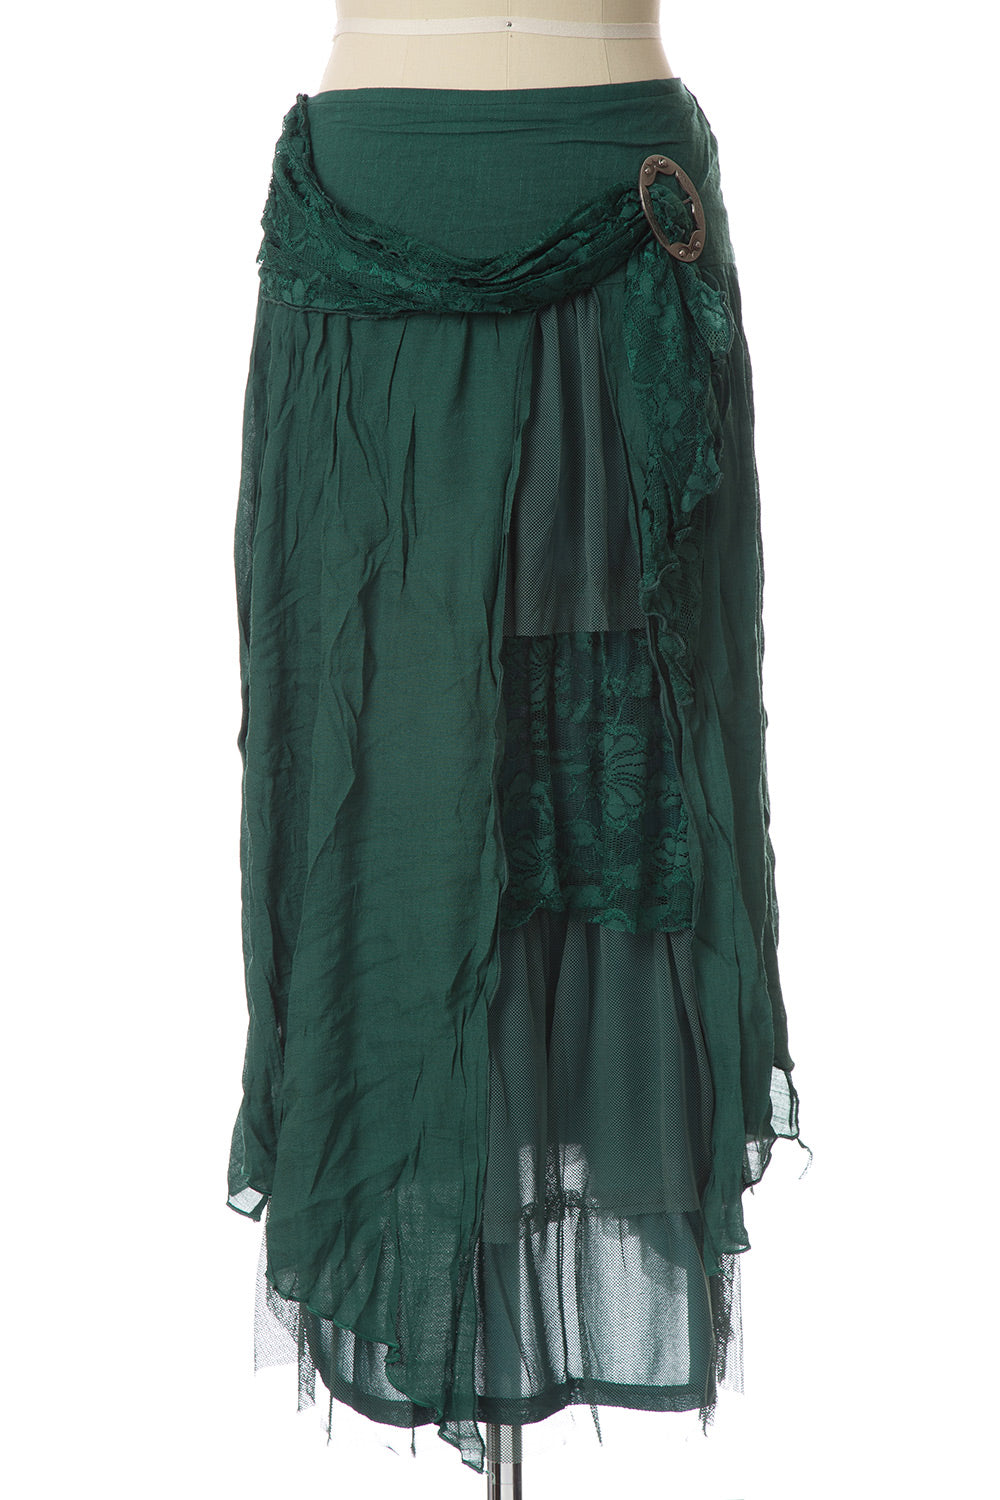 Type 2 Gypsy Skirt in Green